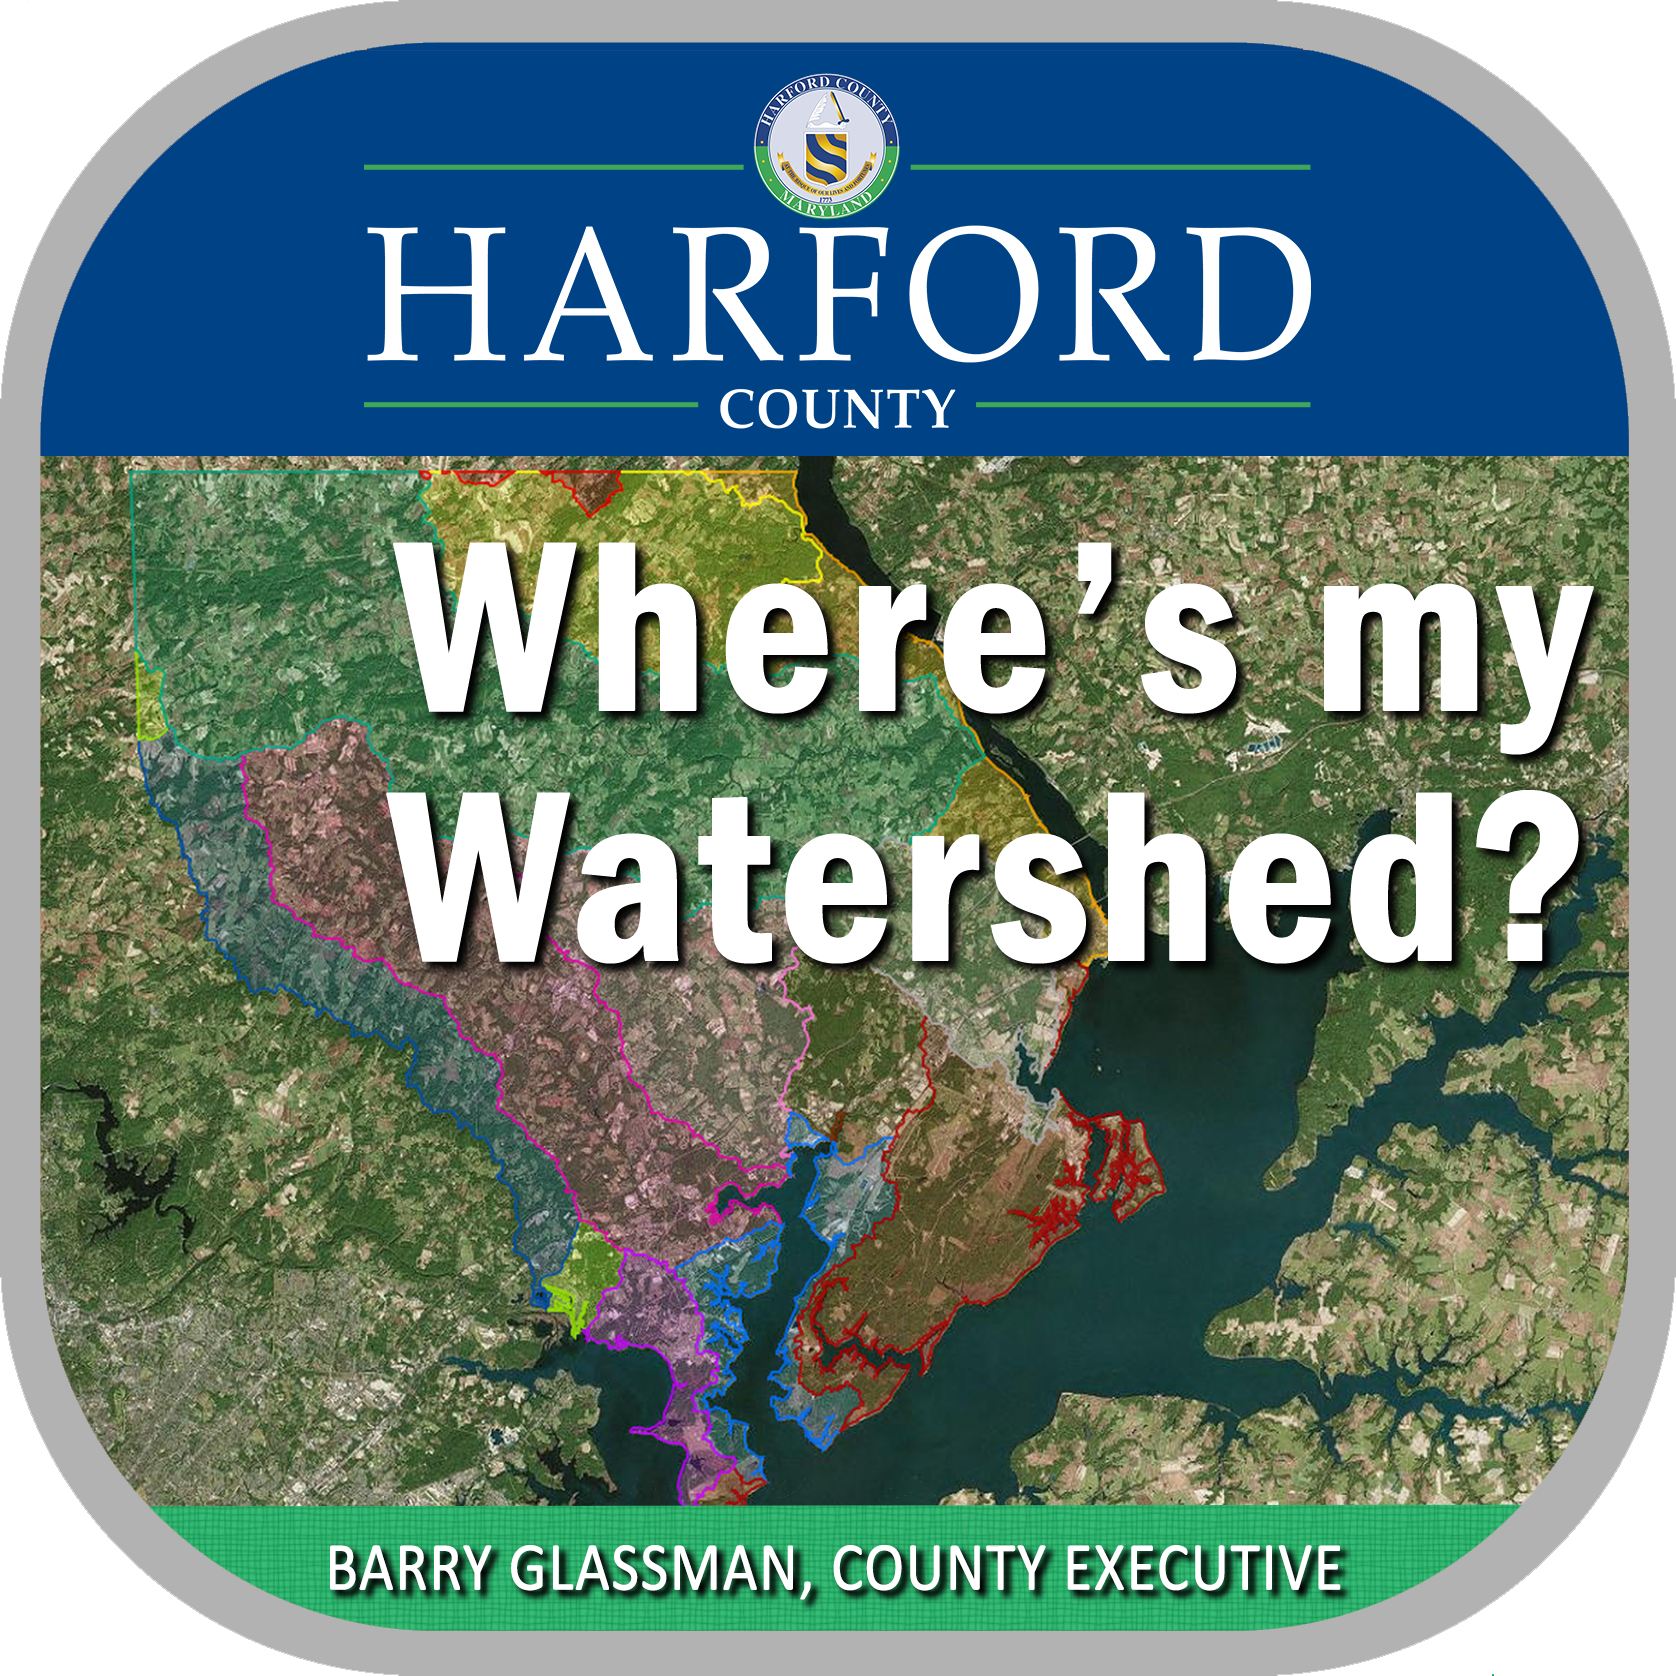 Wheres my watershed button